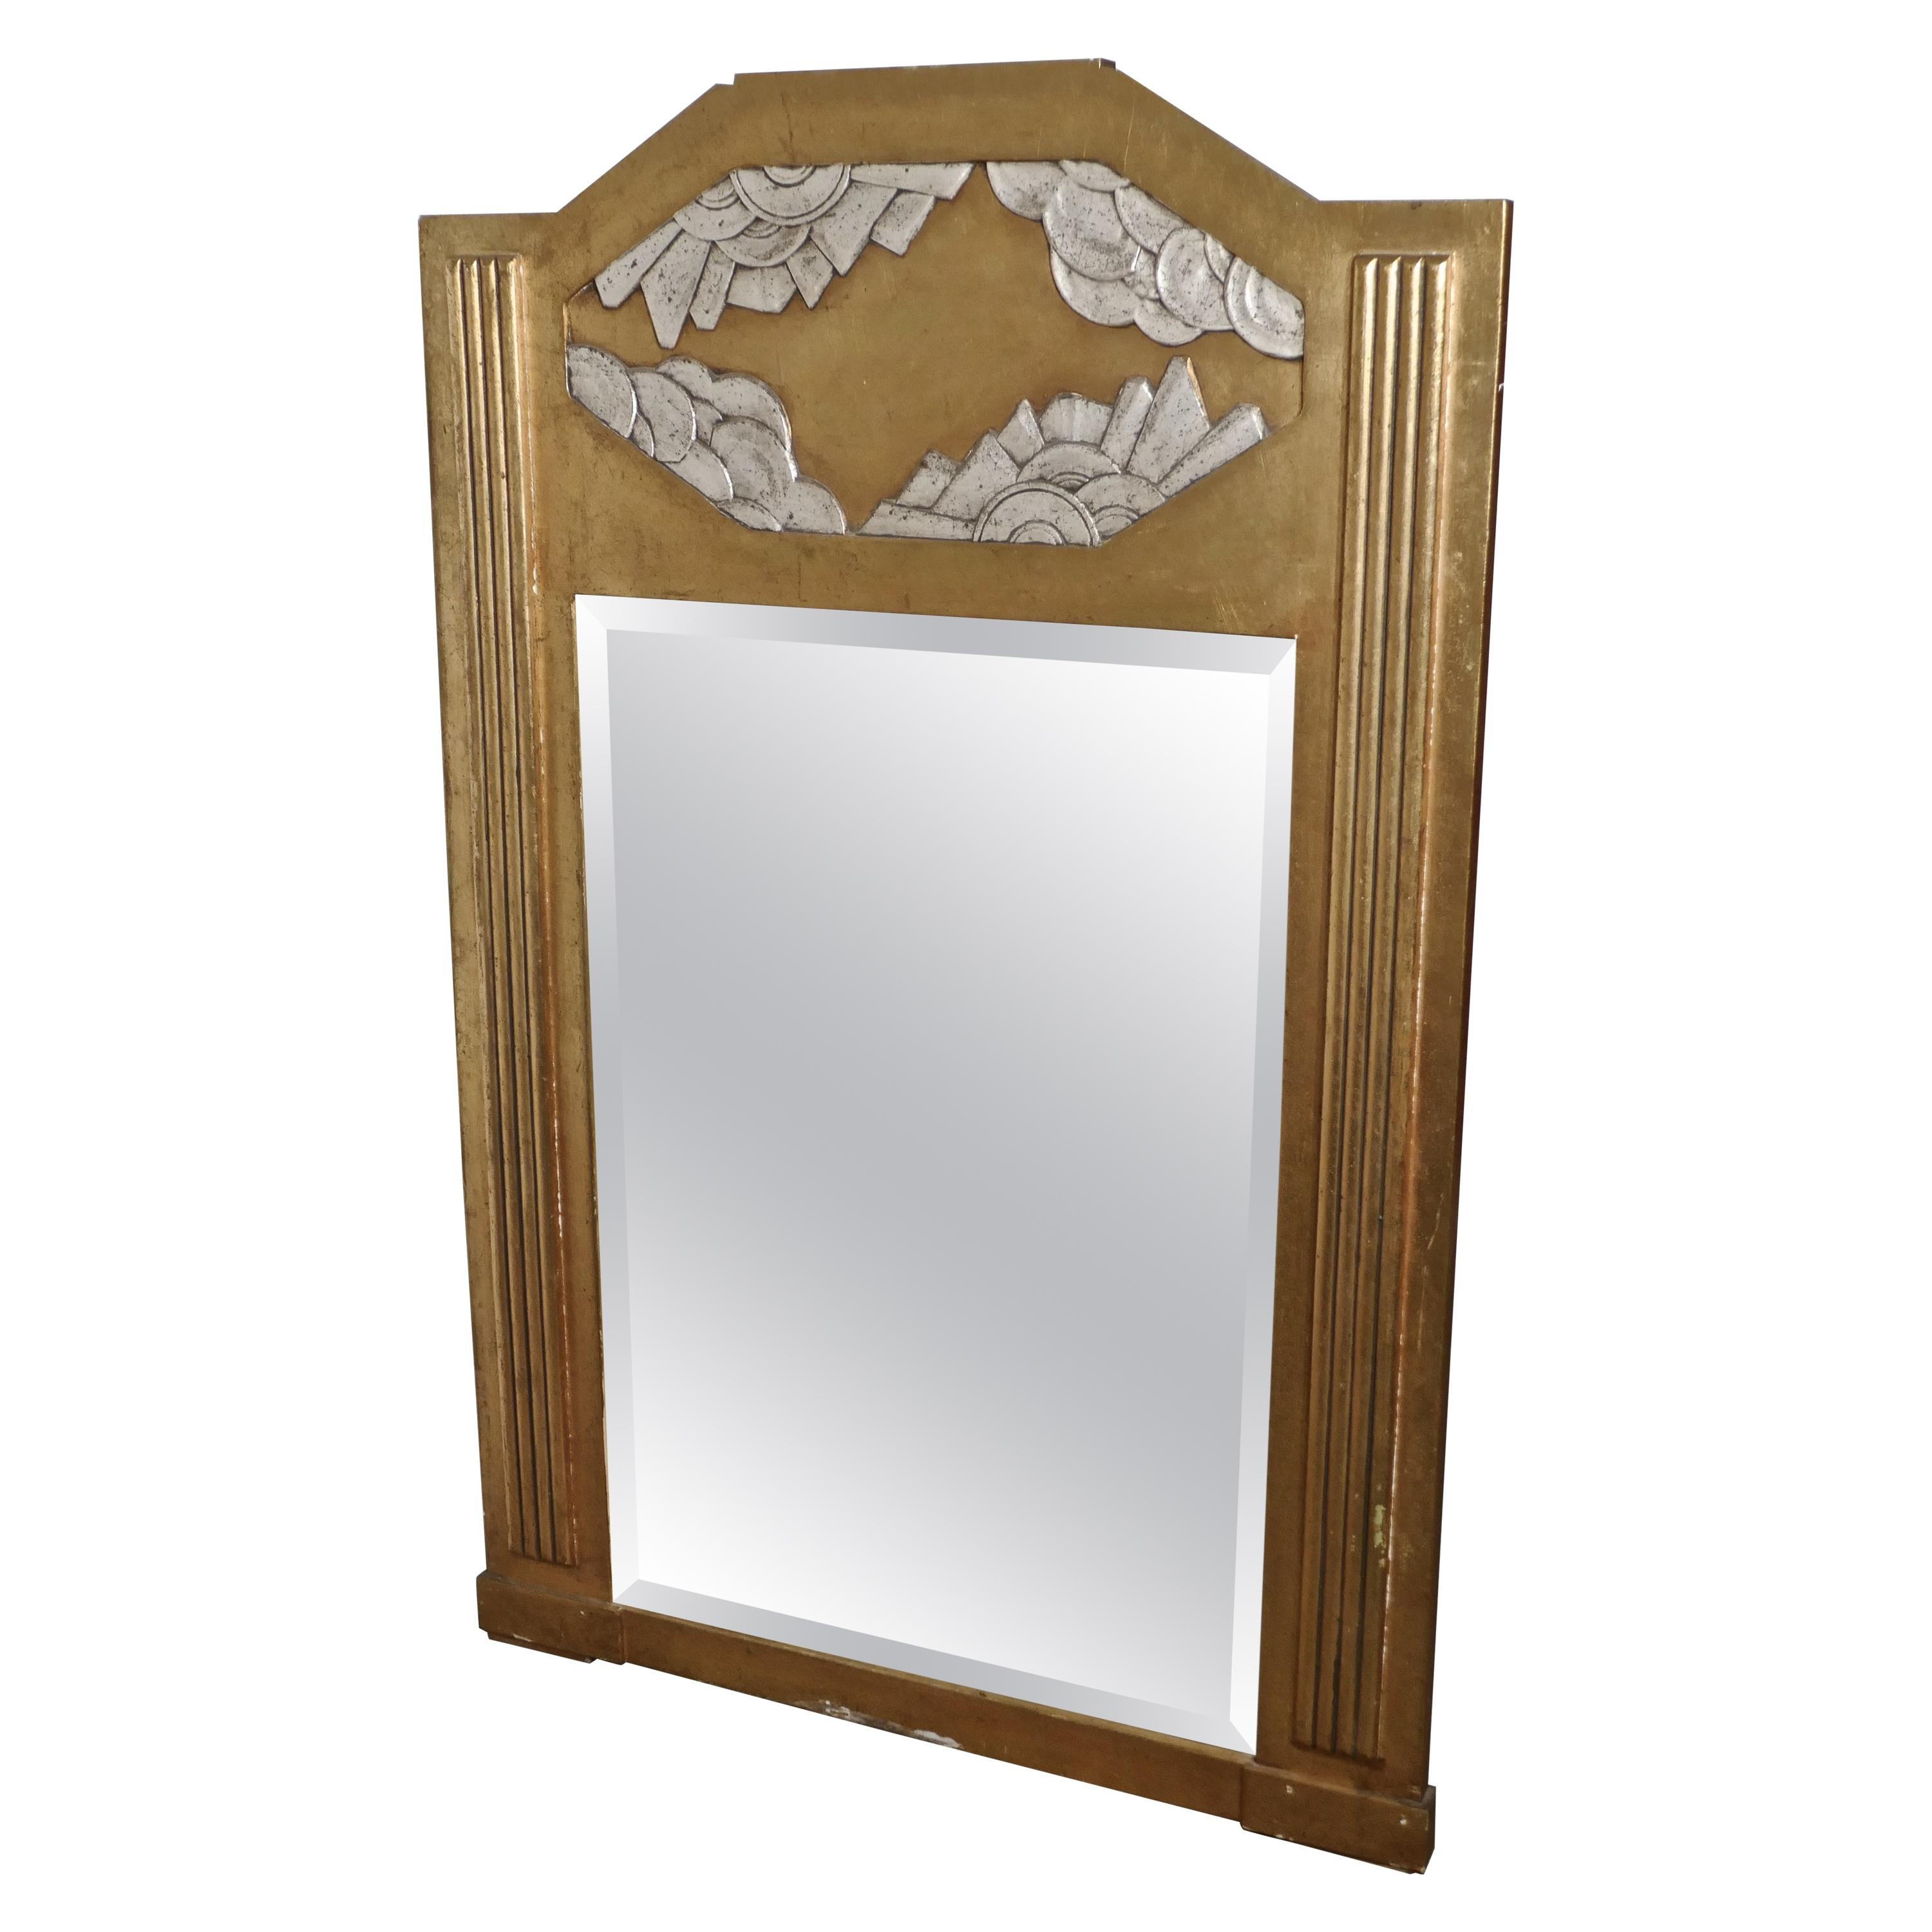 Large french odeon style art deco gilt wall mirror for sale at 1stdibs